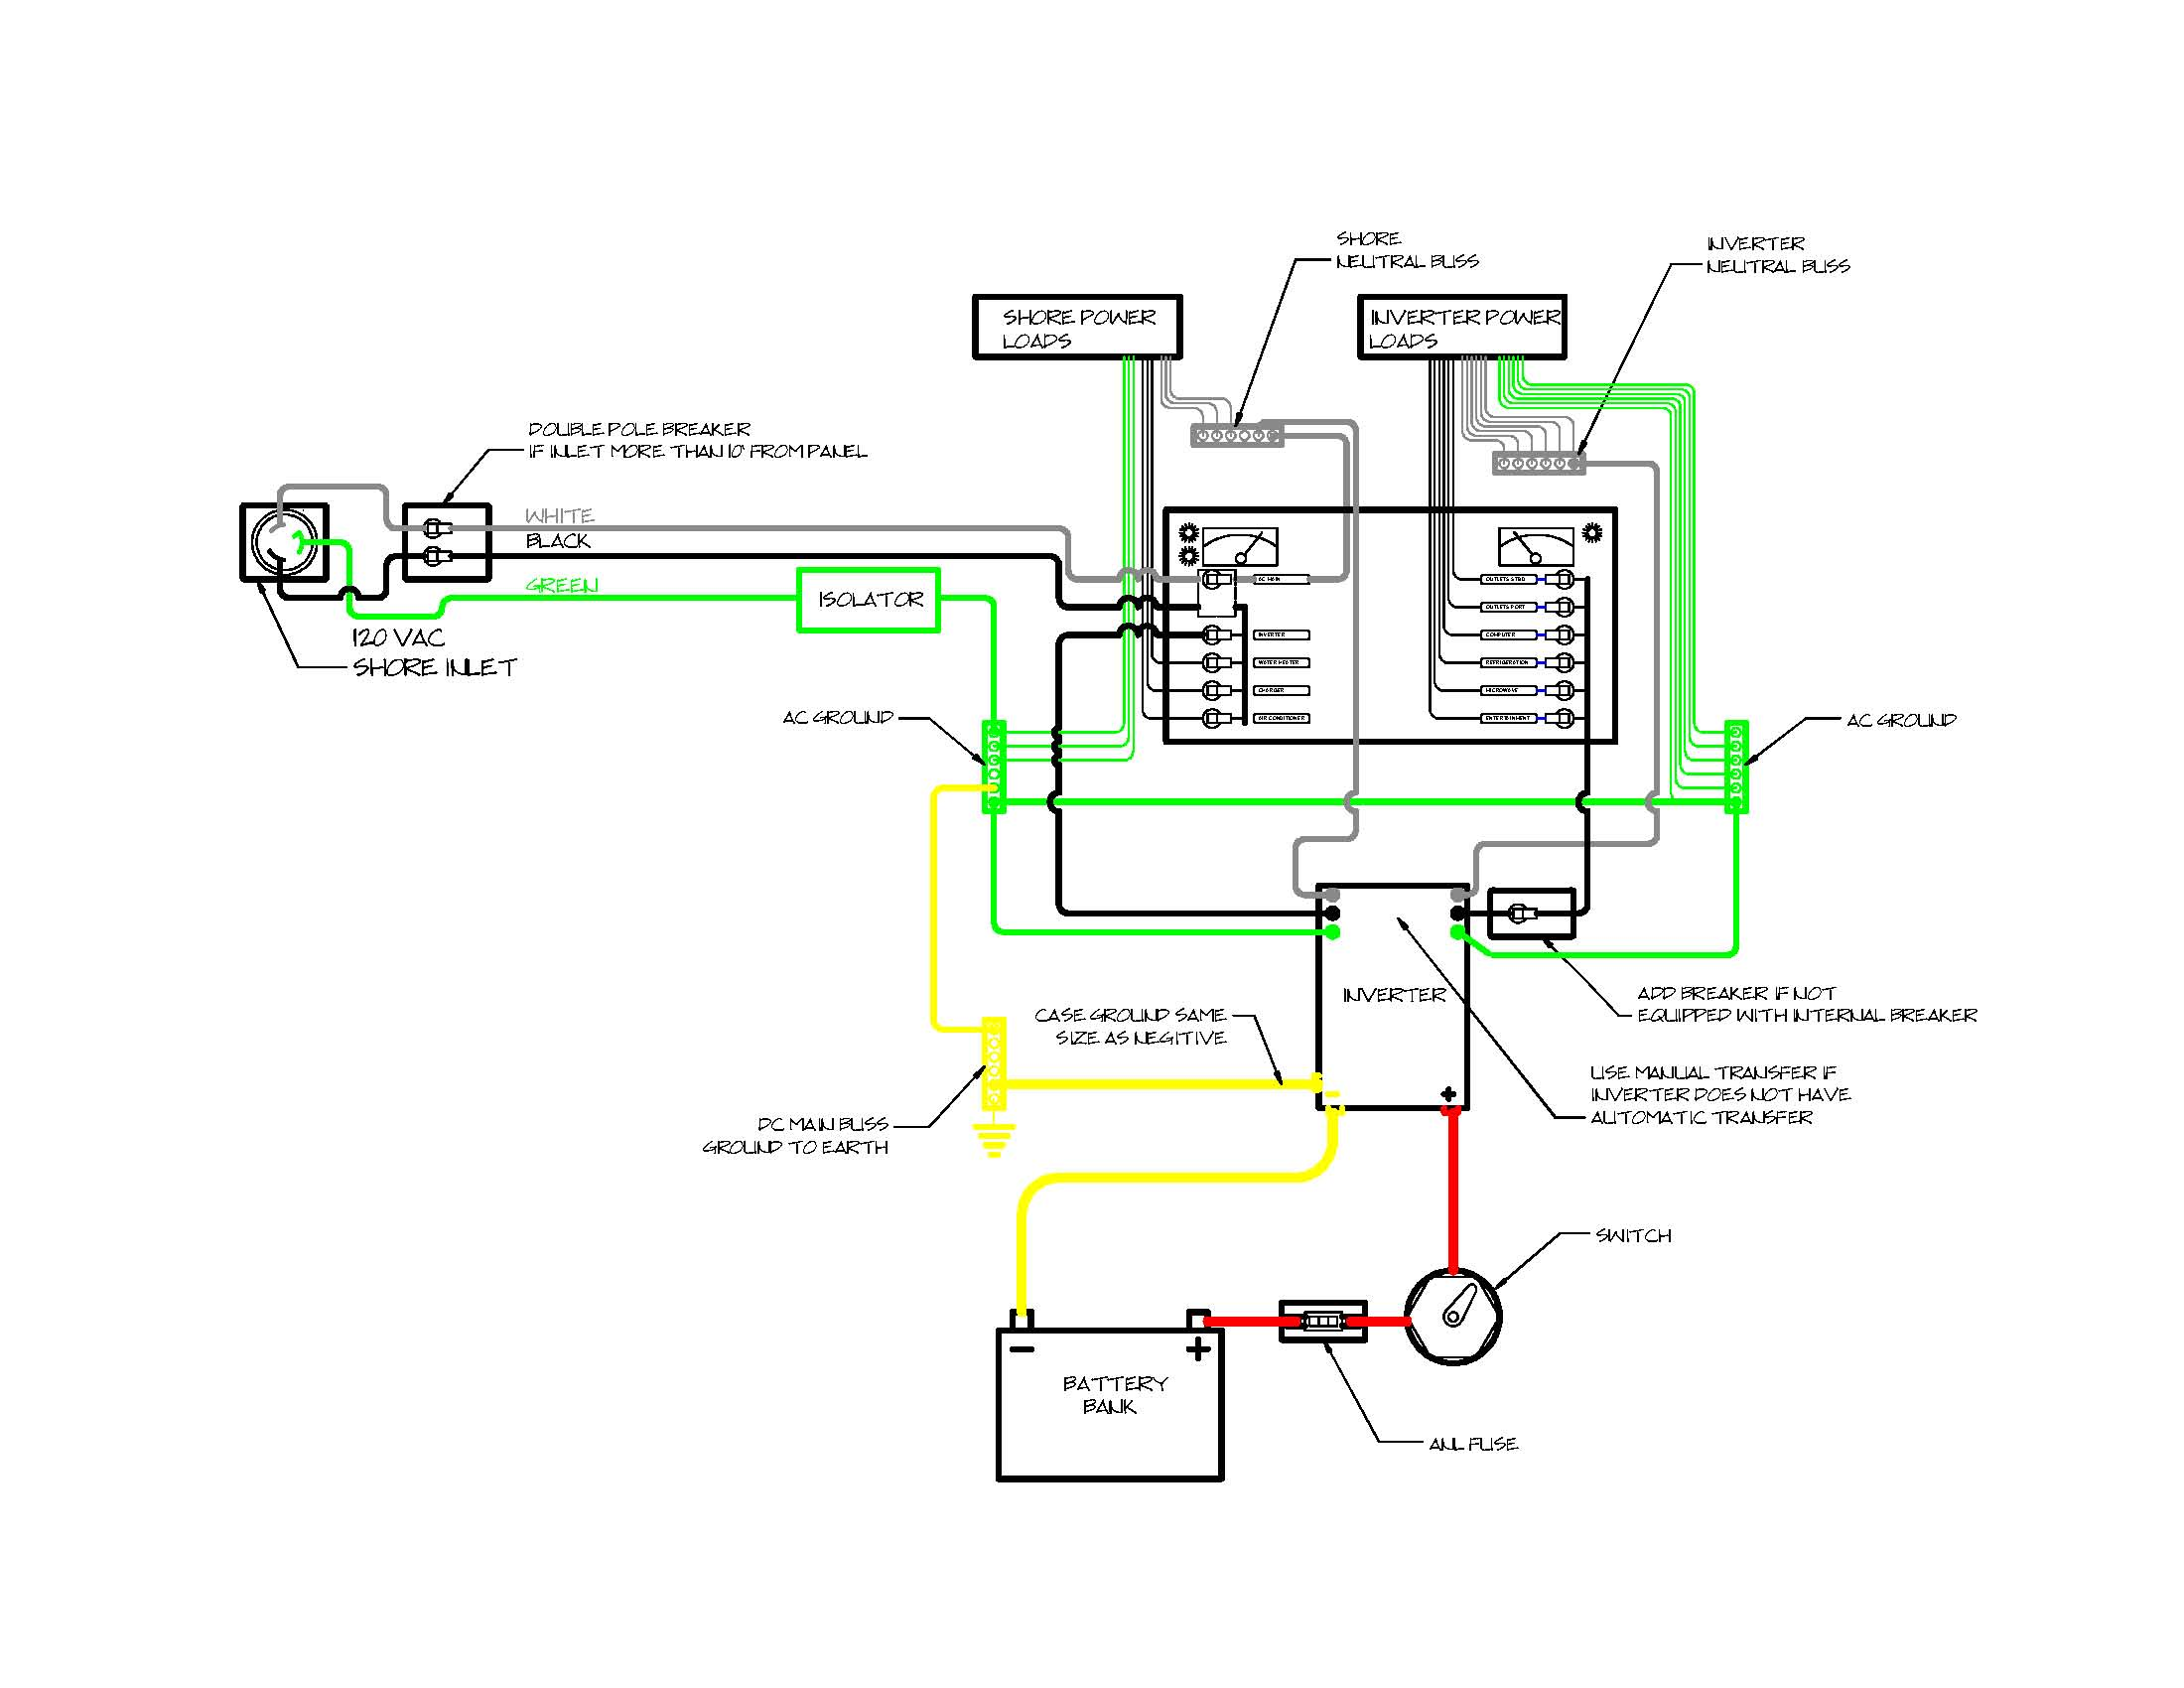 Marine inverter wiring diagram trusted wiring diagrams understanding inverter installations project boat zen boat inverter wiring diagram inverter wiring simplejpg asfbconference2016